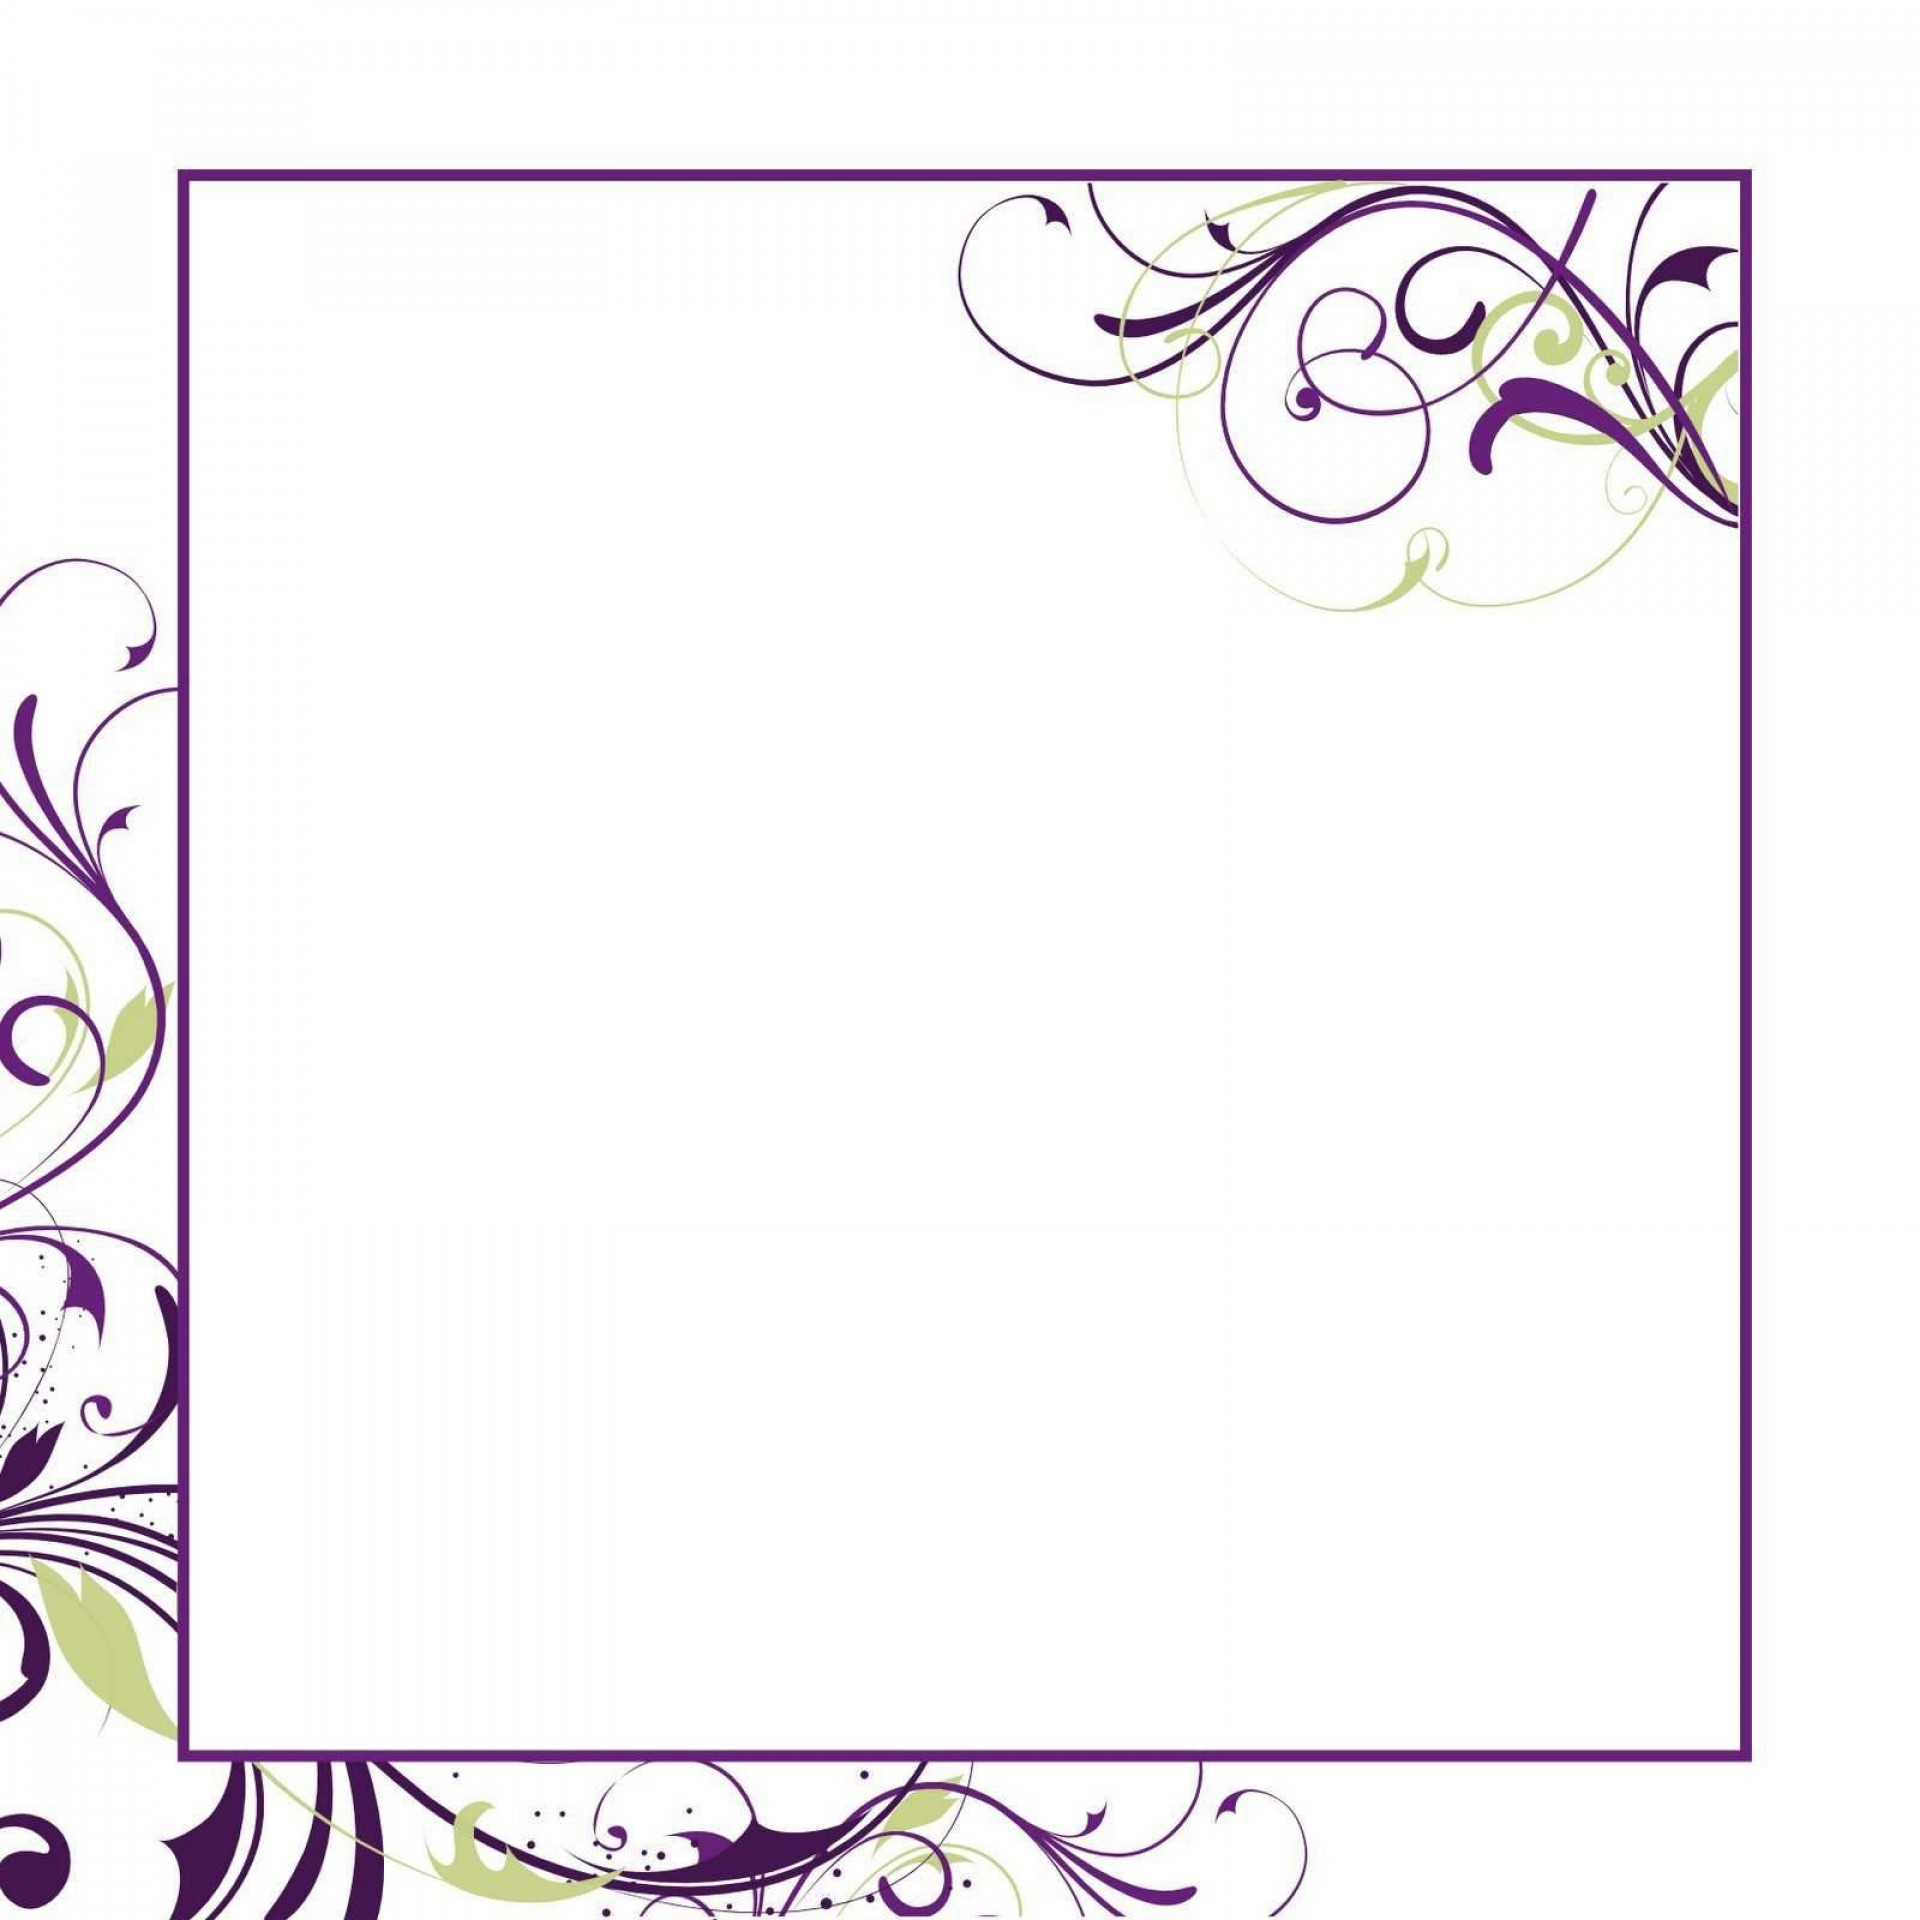 003 Stunning Free Download Formal Invitation Card Template Concept  Sample1920